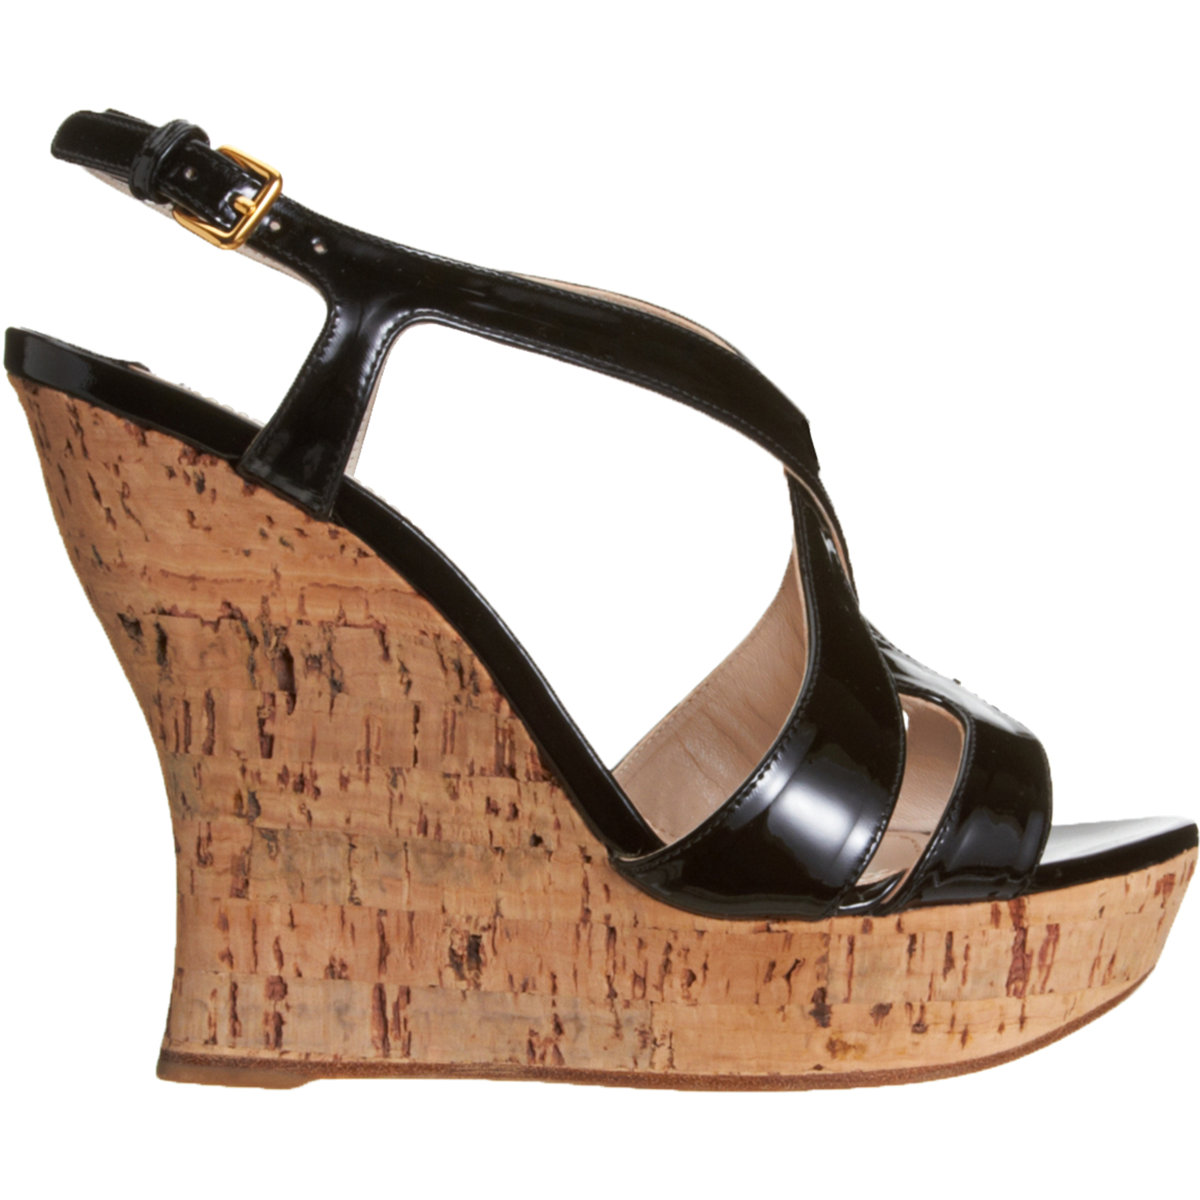 Miu Miu Cutout Wedge Sandals clearance wholesale price sale low shipping 7mTuHXAm